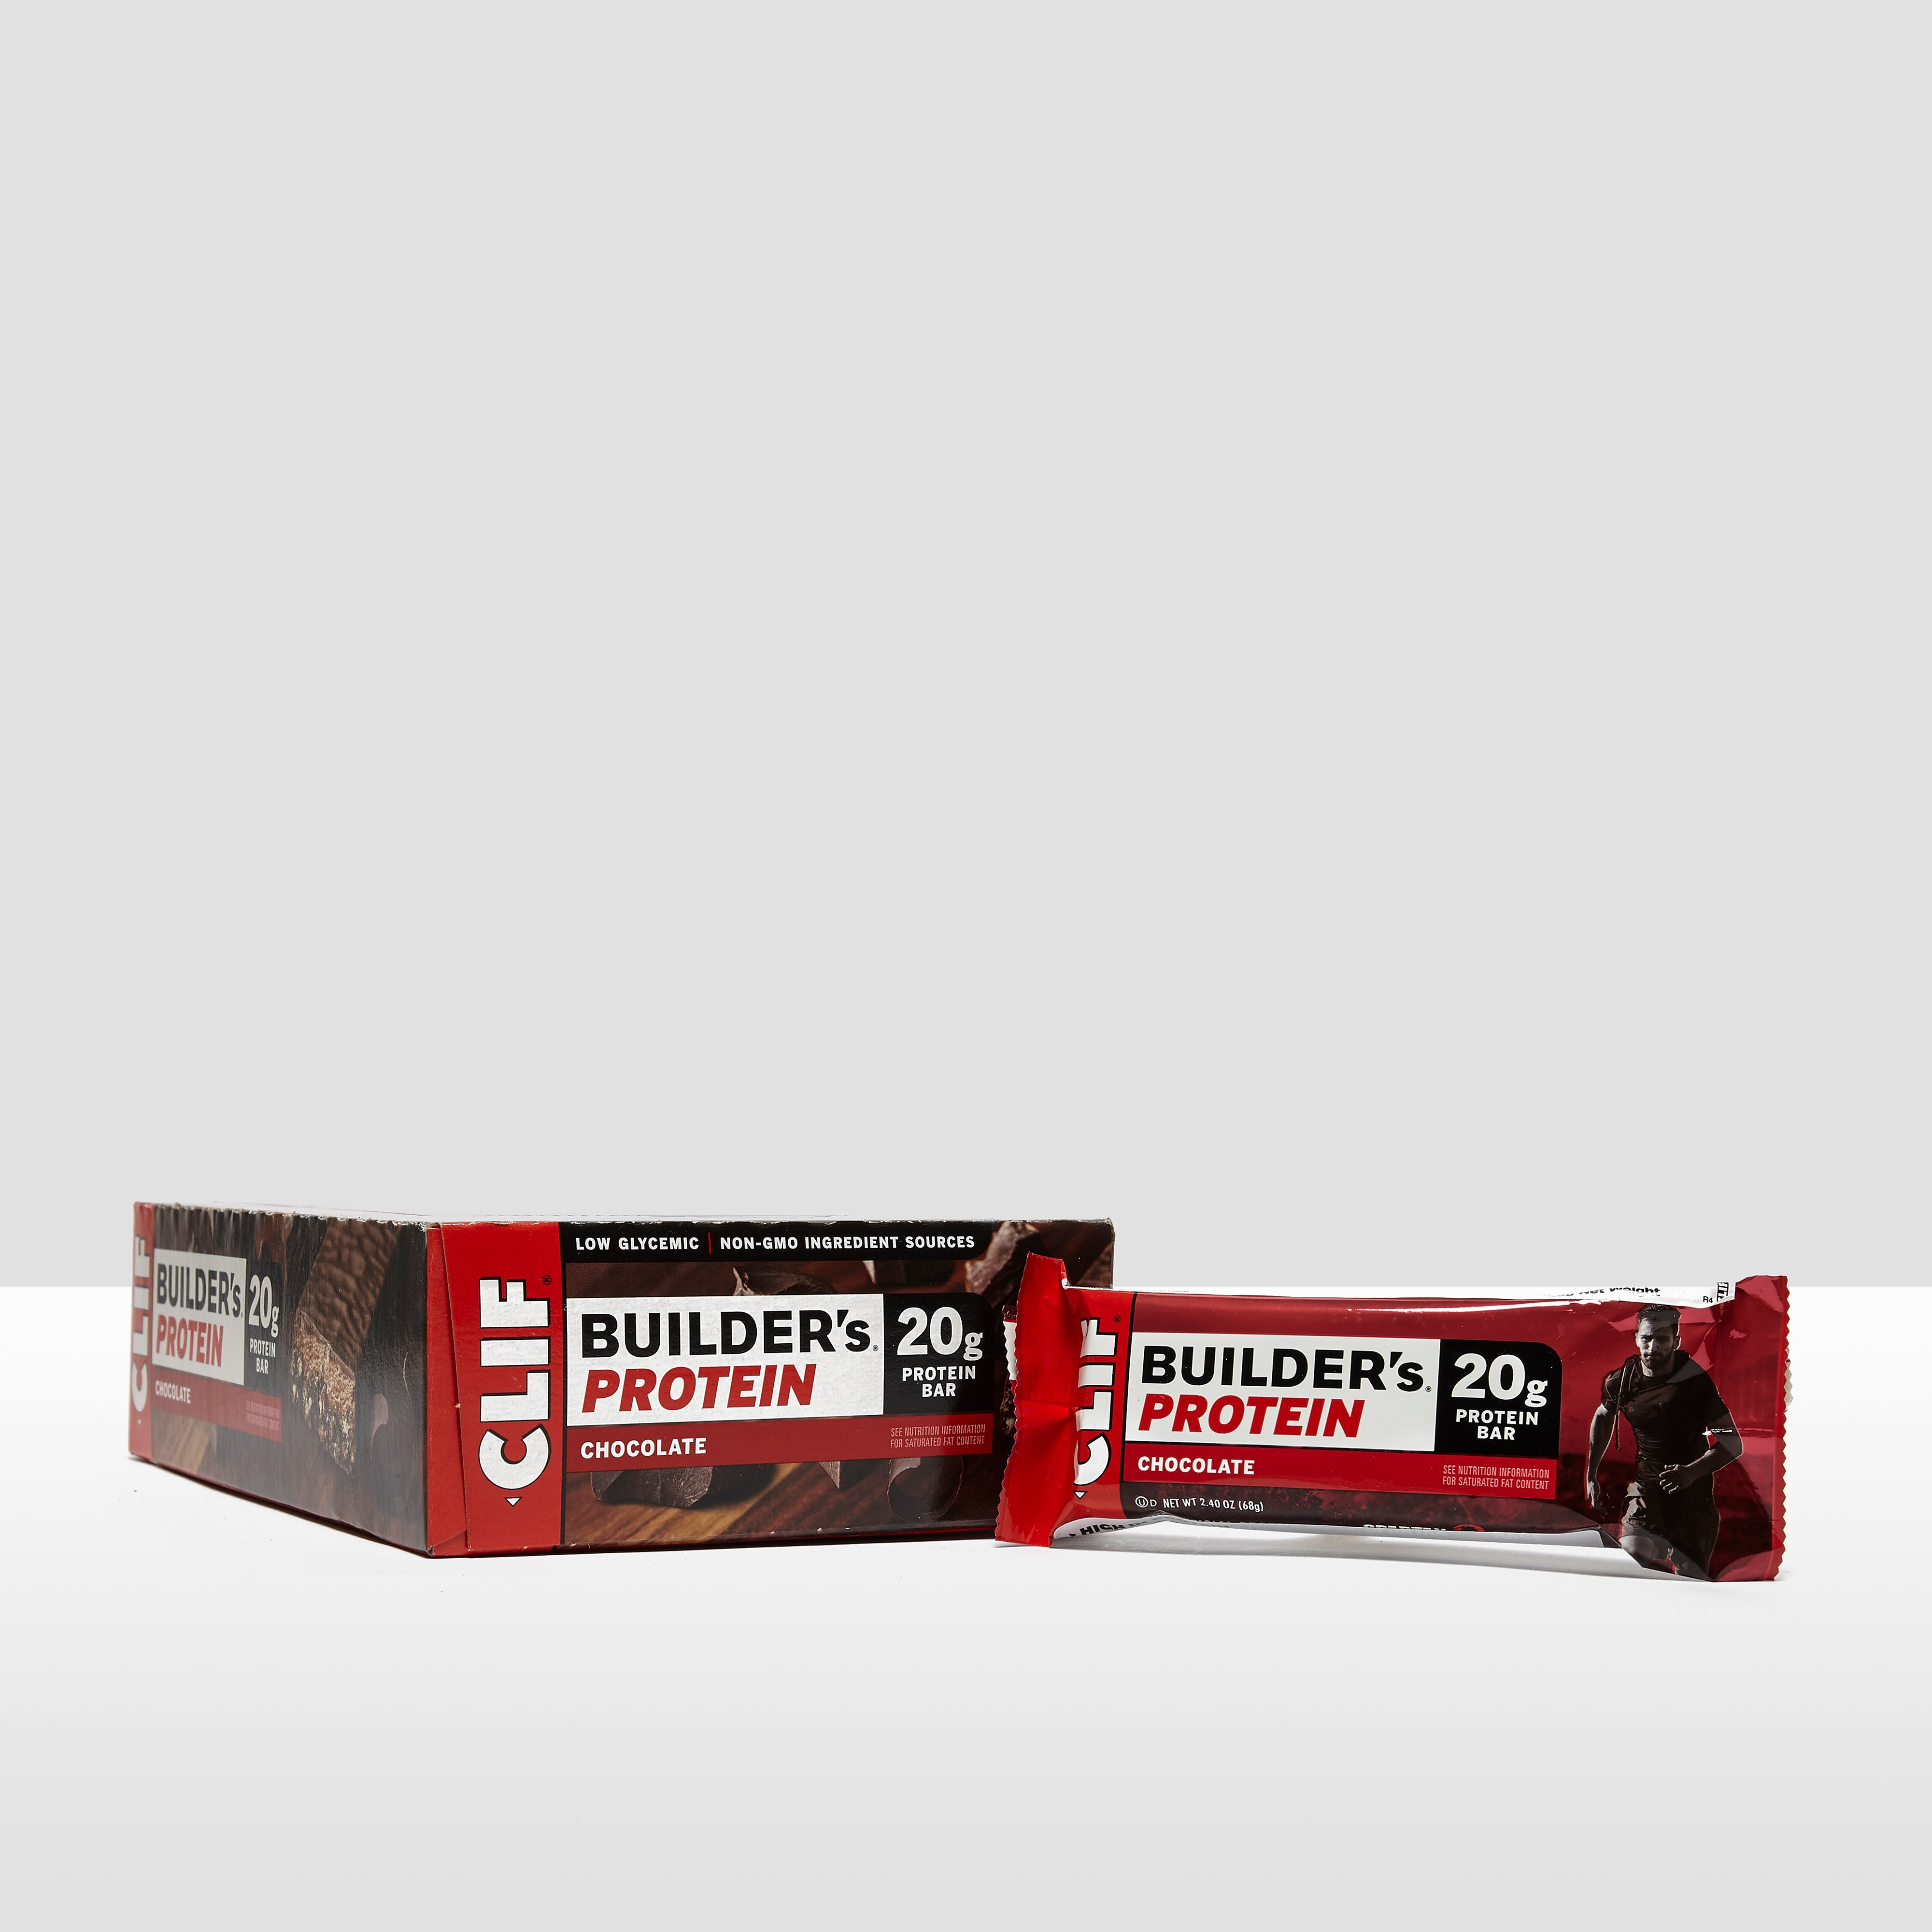 Unnu Builder's Protein Bar (12 Pack)- Chocolate